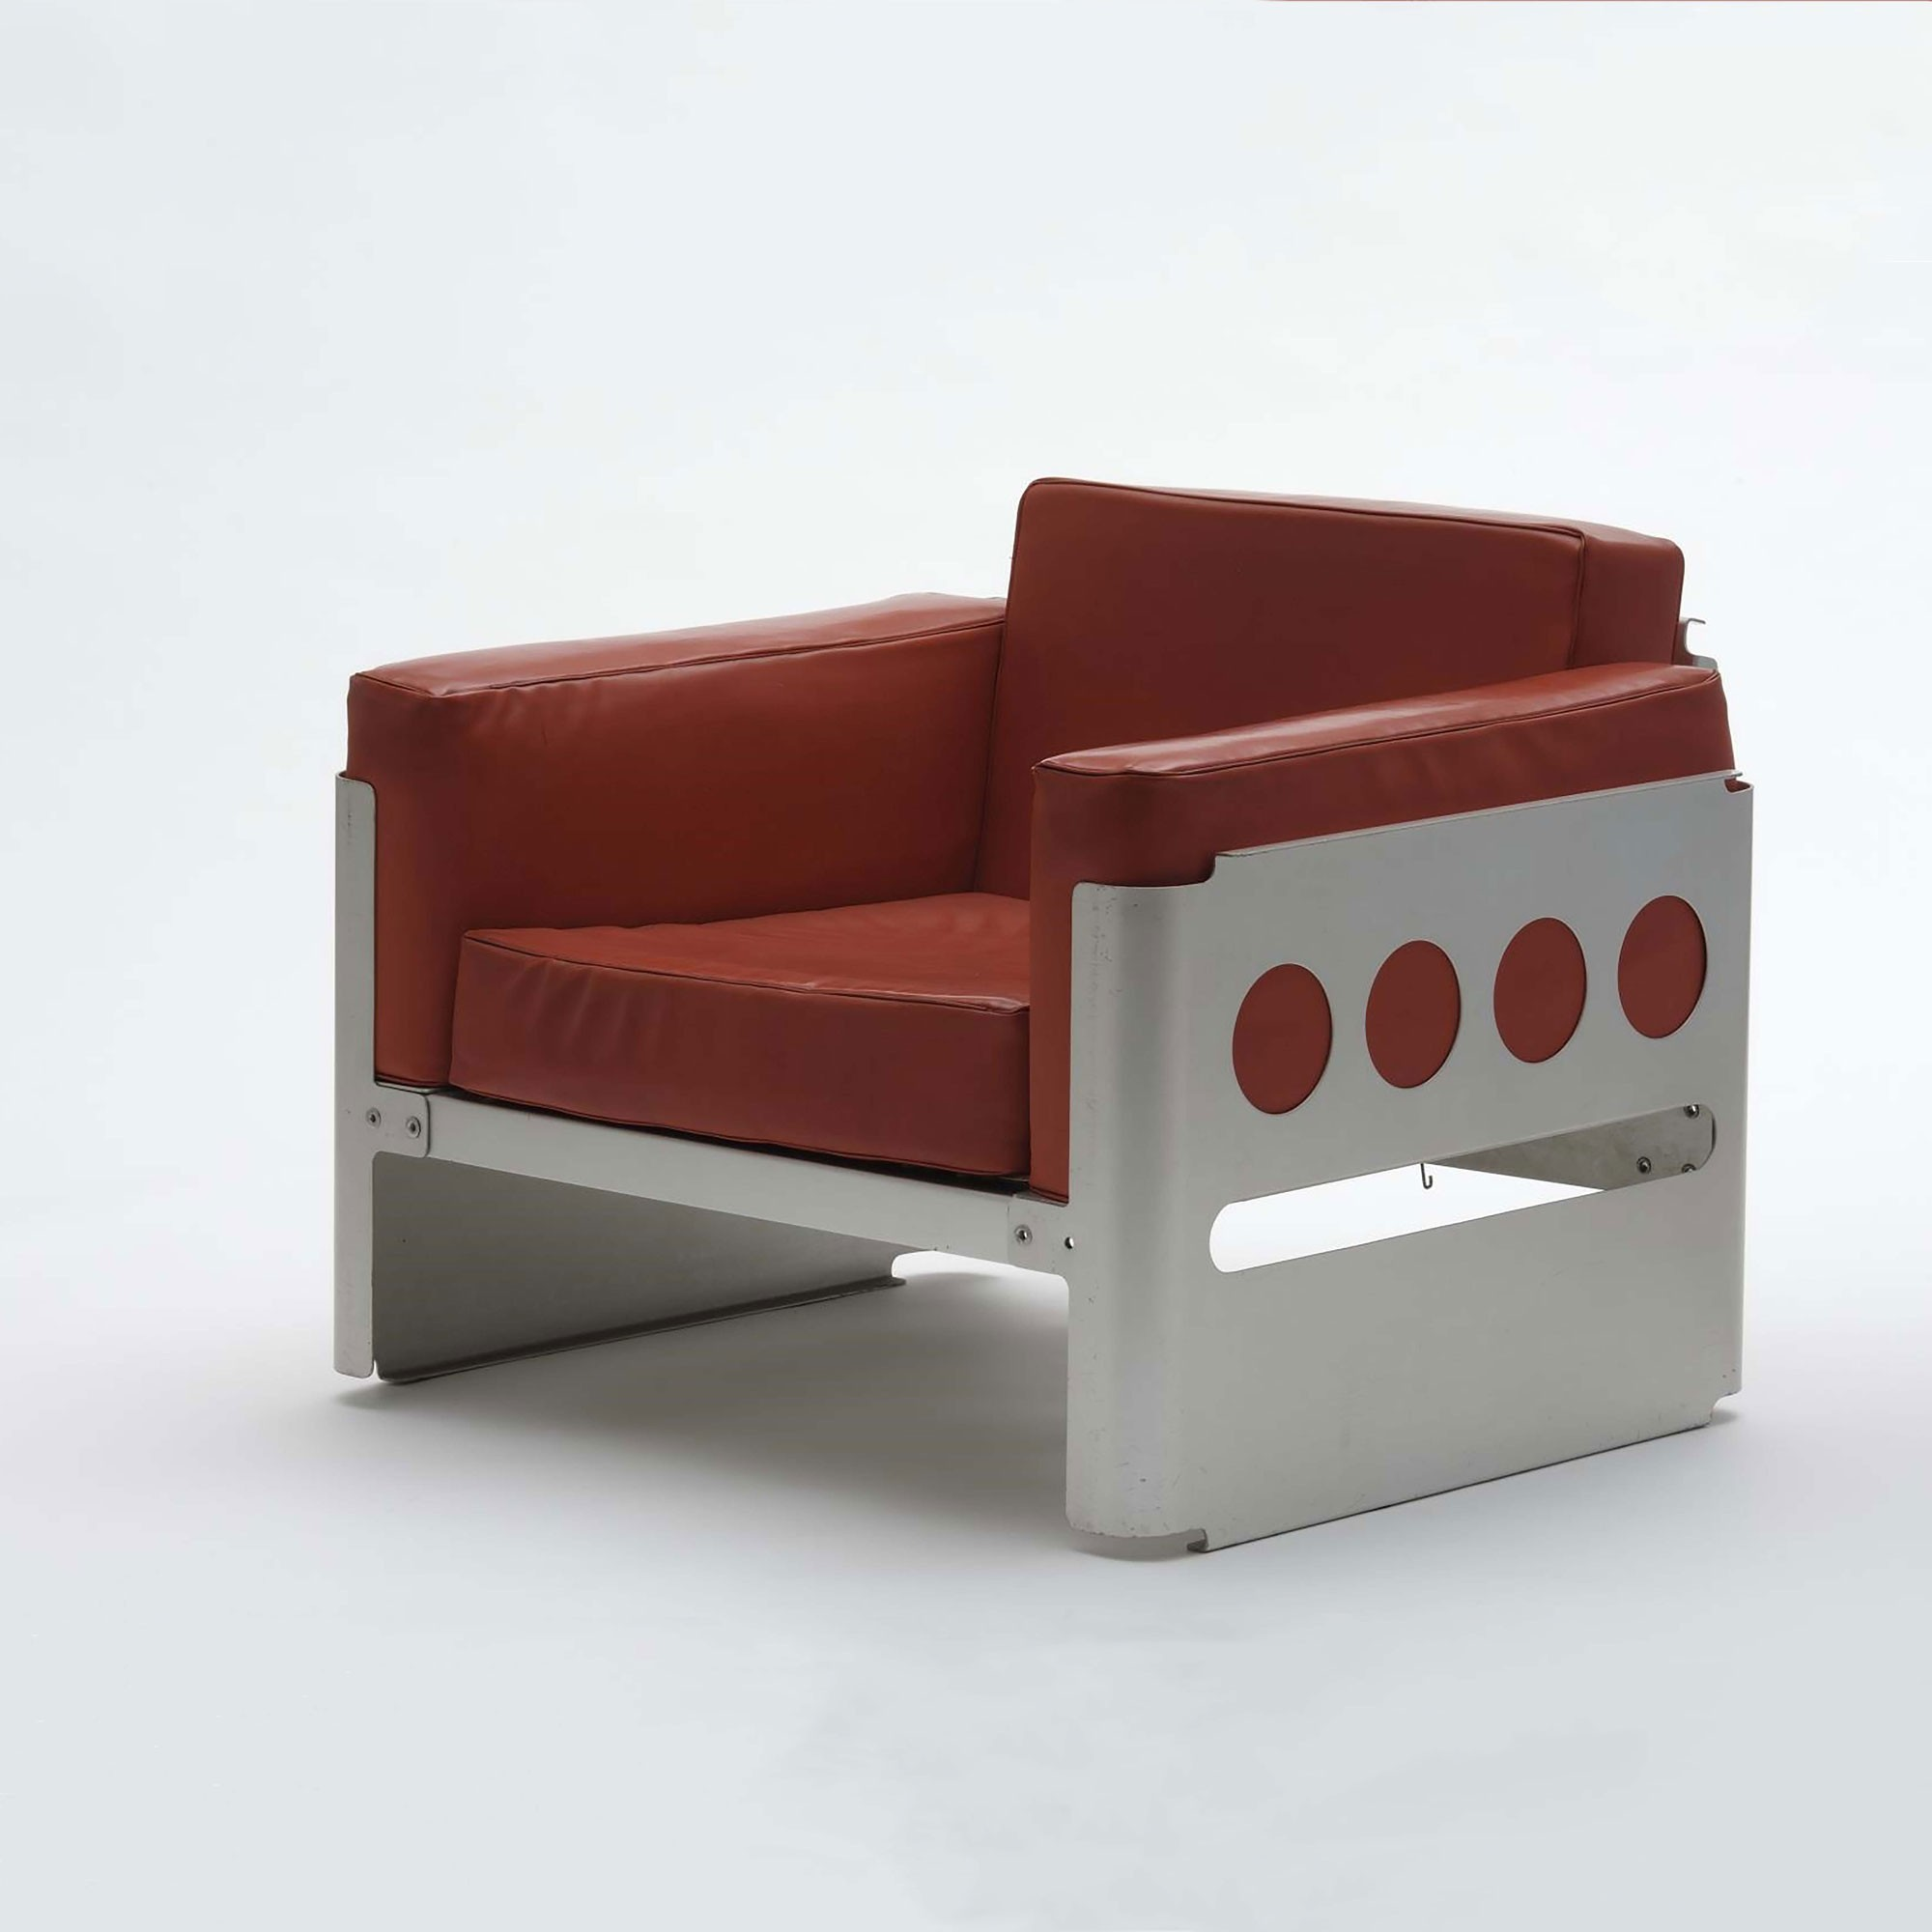 <BODY>Walter Pichler, Fauteuil<em> Galaxy</em>, Vienna, 1966<br />Aluminum, riveted; foam padding with red textile cover<br />© MAK/Georg Mayer</BODY>